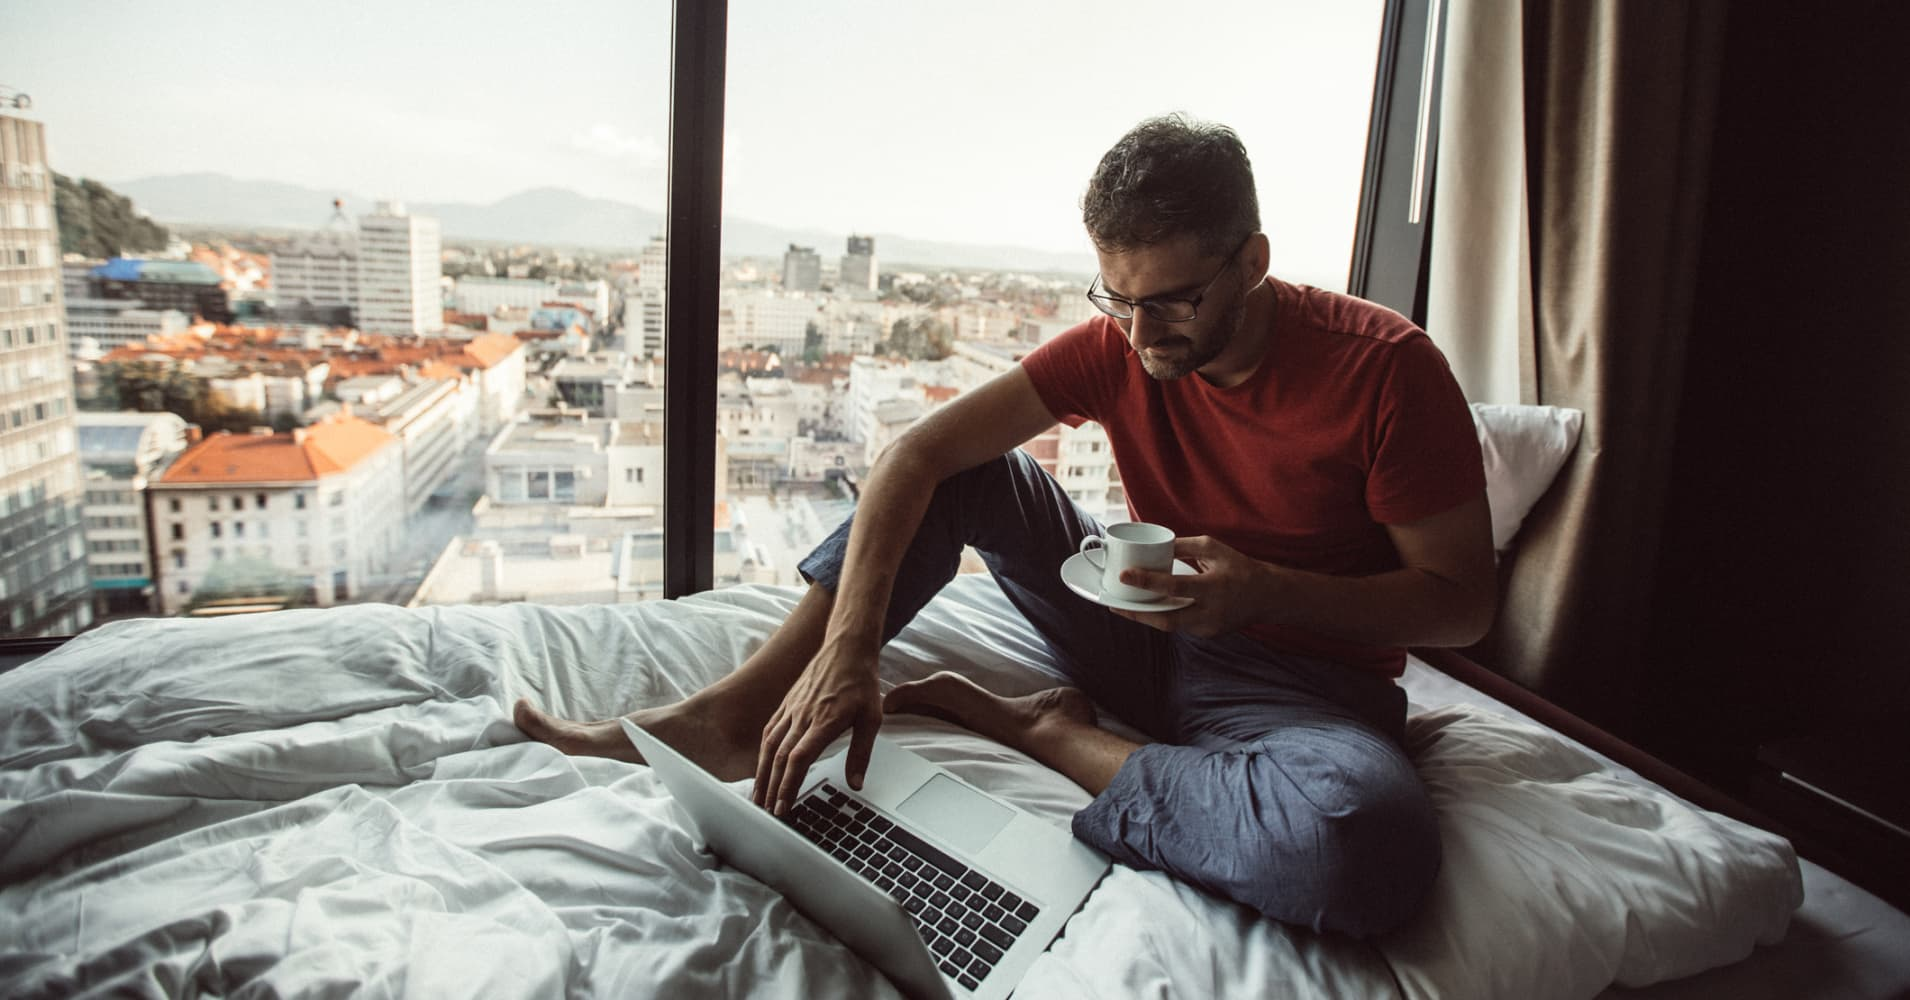 Man in bed using computer